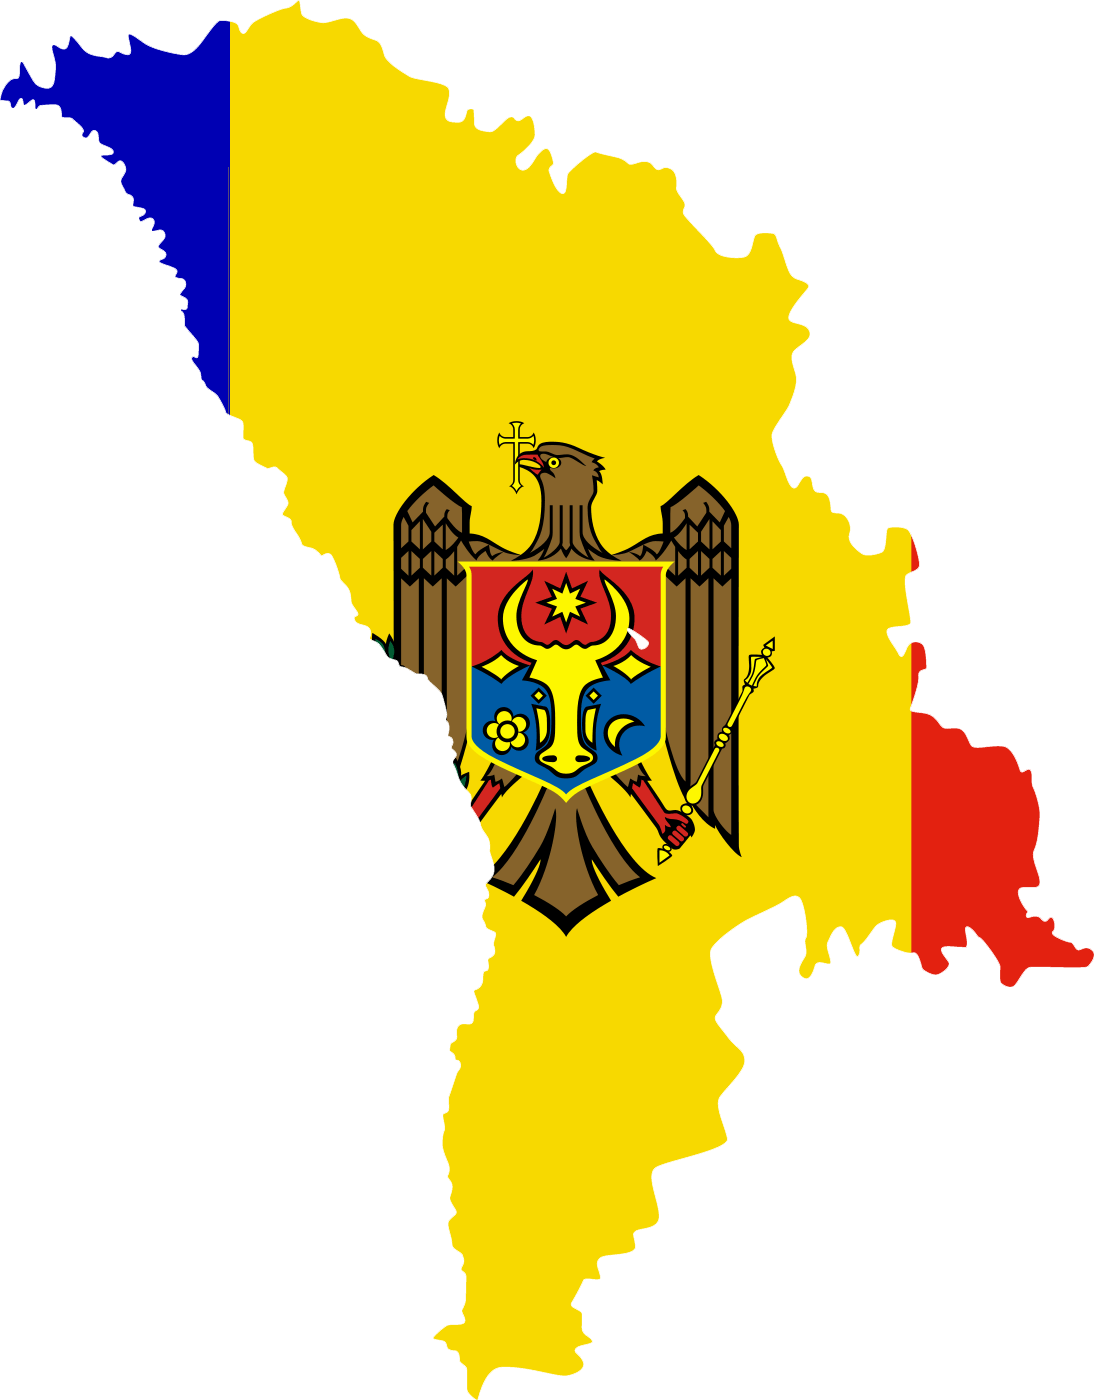 am political map with Moldova Flag Map on Micro Business Direct Donate In Haiti additionally Sao Paulo Metro Map Subway as well Showthread also Keci Staff Knbc Montana Congressional Delegates Criticize Atf Memo Forbidding Gun Sales To Medical Marijuana Patients besides Chicano Park.